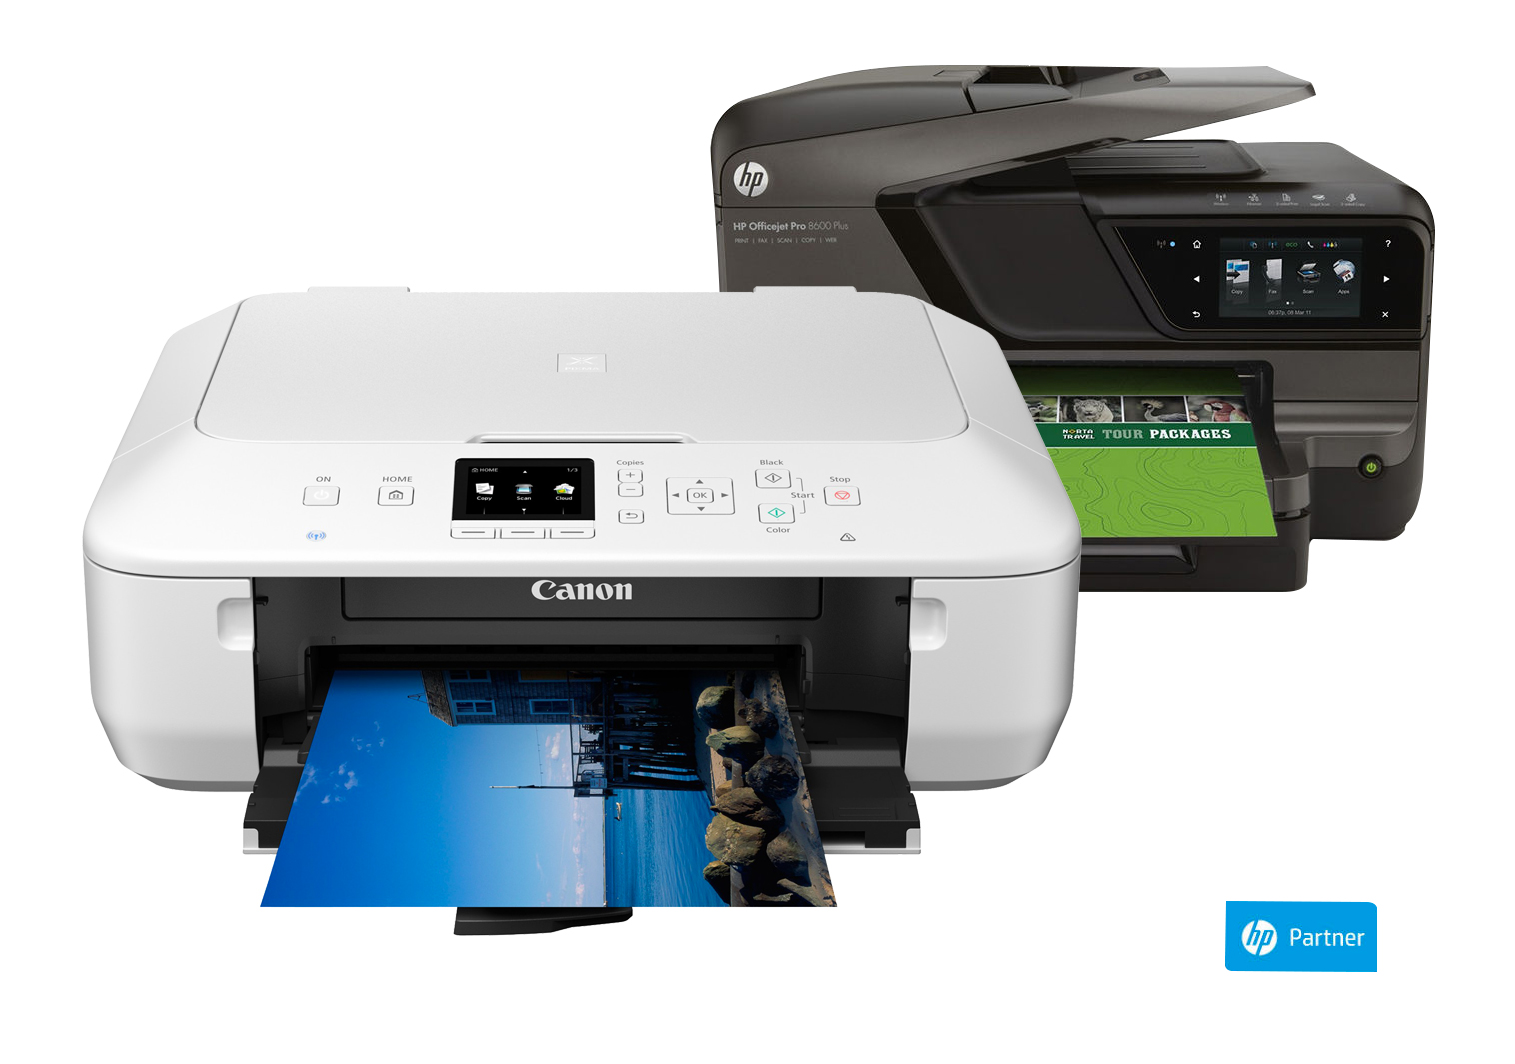 Printers and All-In-Ones